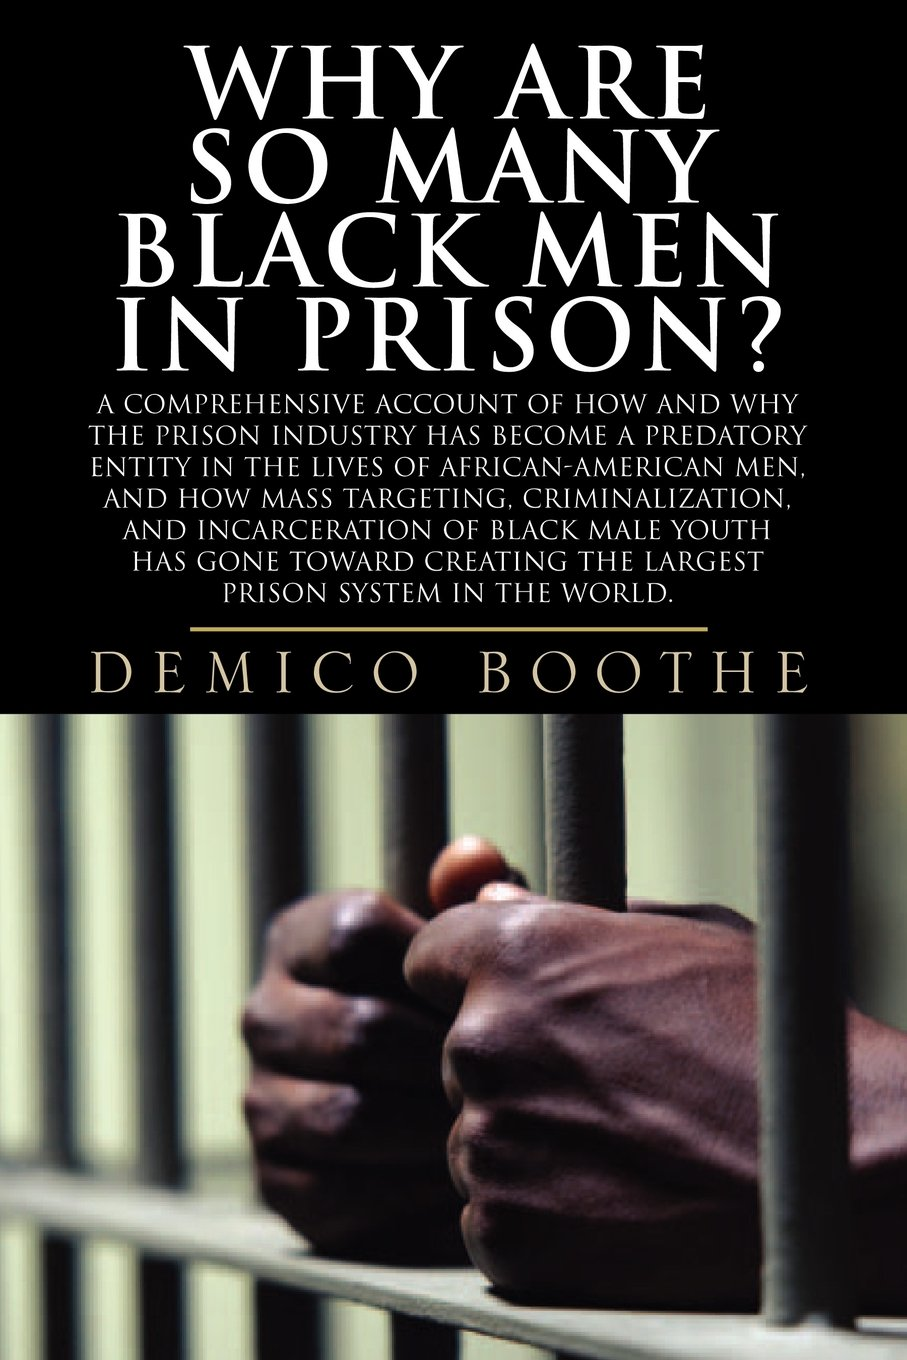 Why Are So Many Black Men In Prison? Aprehensive Account Of How And Why  The Prison Industry Has Become A Predatory Entity In The Lives Of